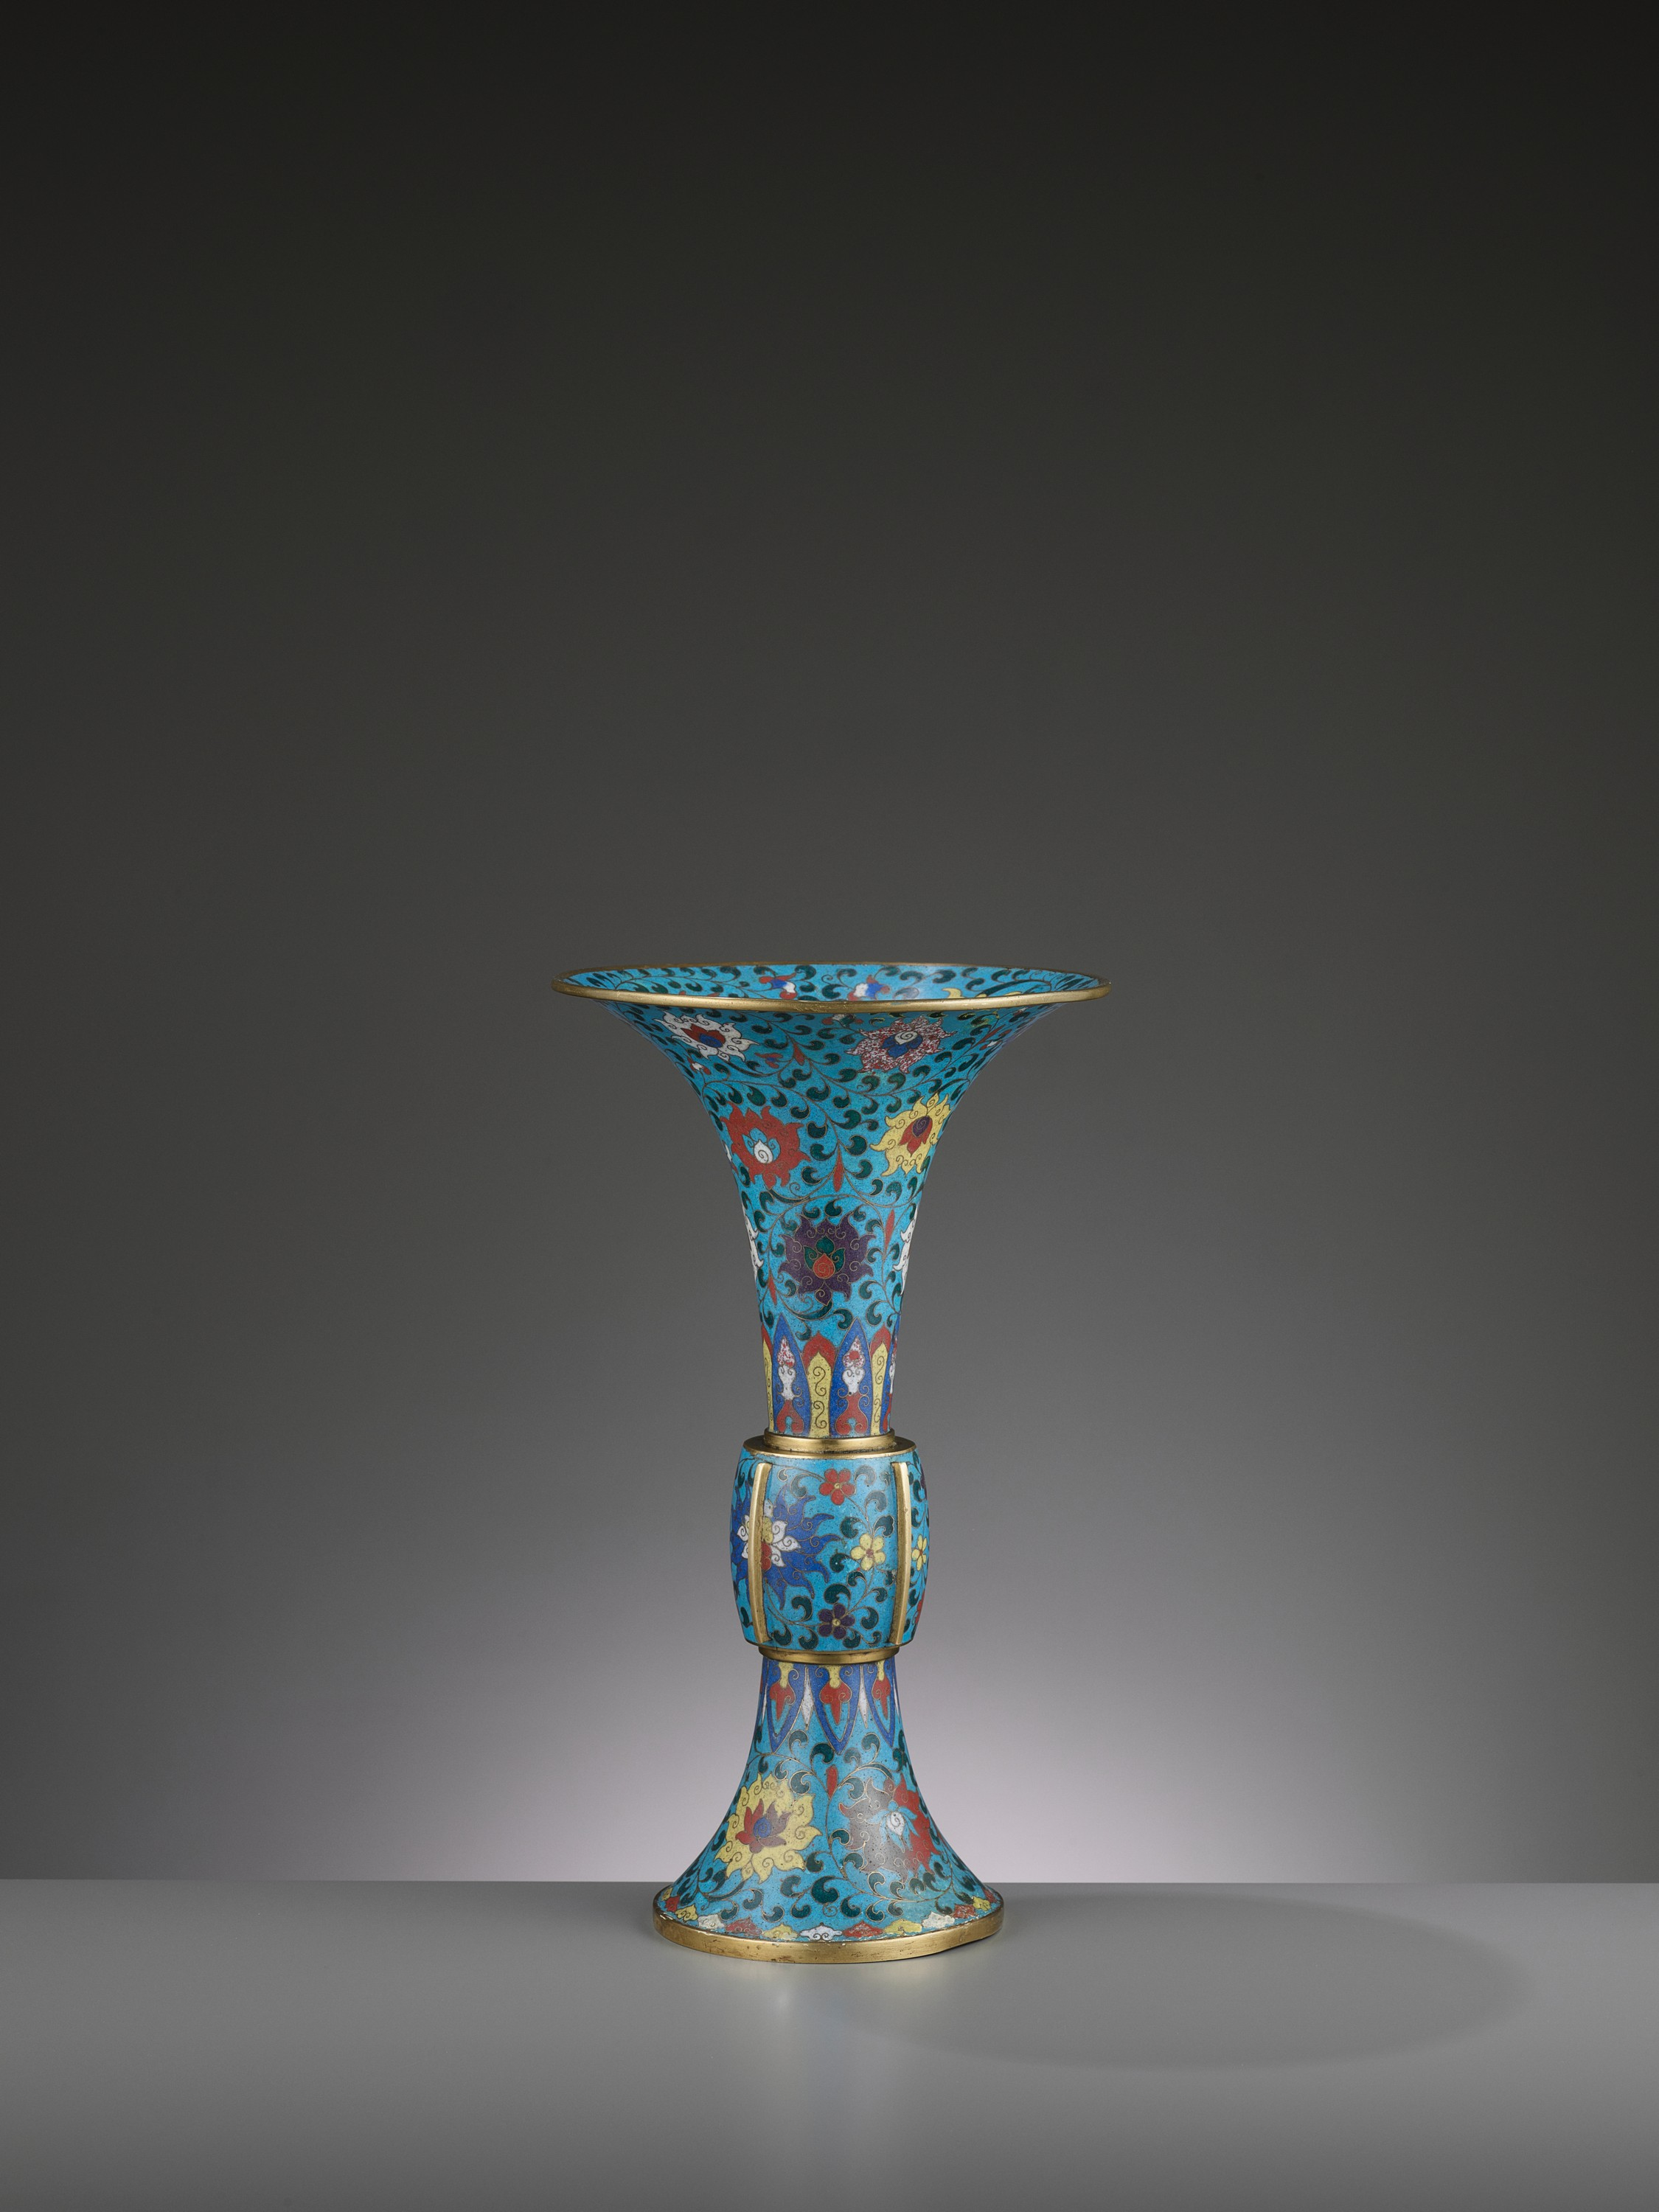 A LARGE CLOISONNE AND GILT-BRONZE GU, QING DYNASTY - Image 4 of 6